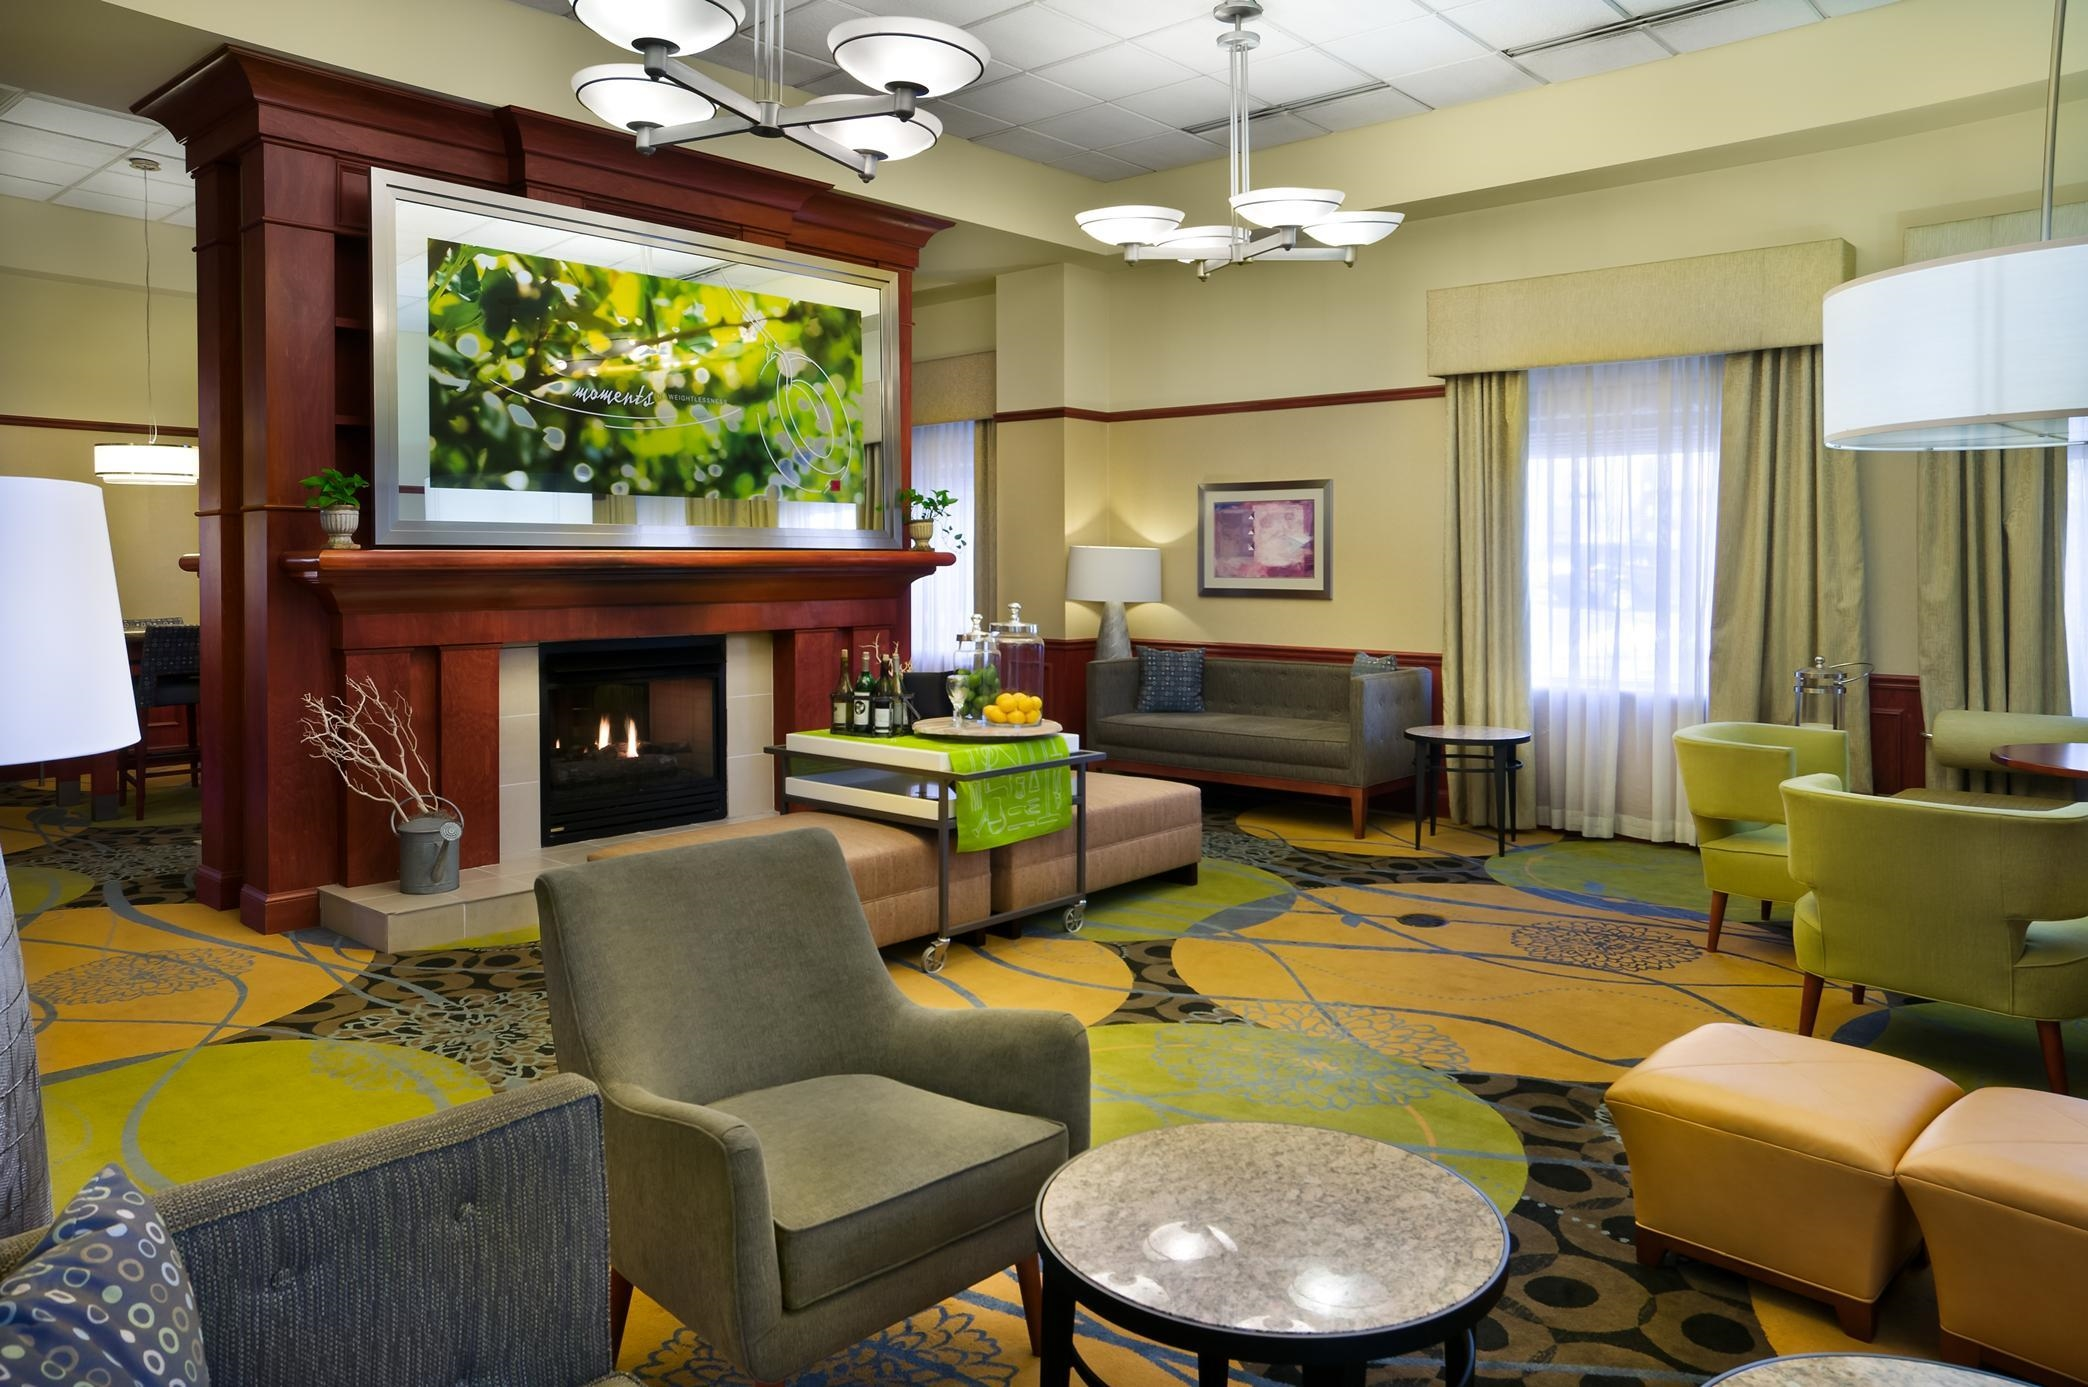 Hilton Garden Inn Detroit Downtown Coupons Near Me In Detroit 8coupons